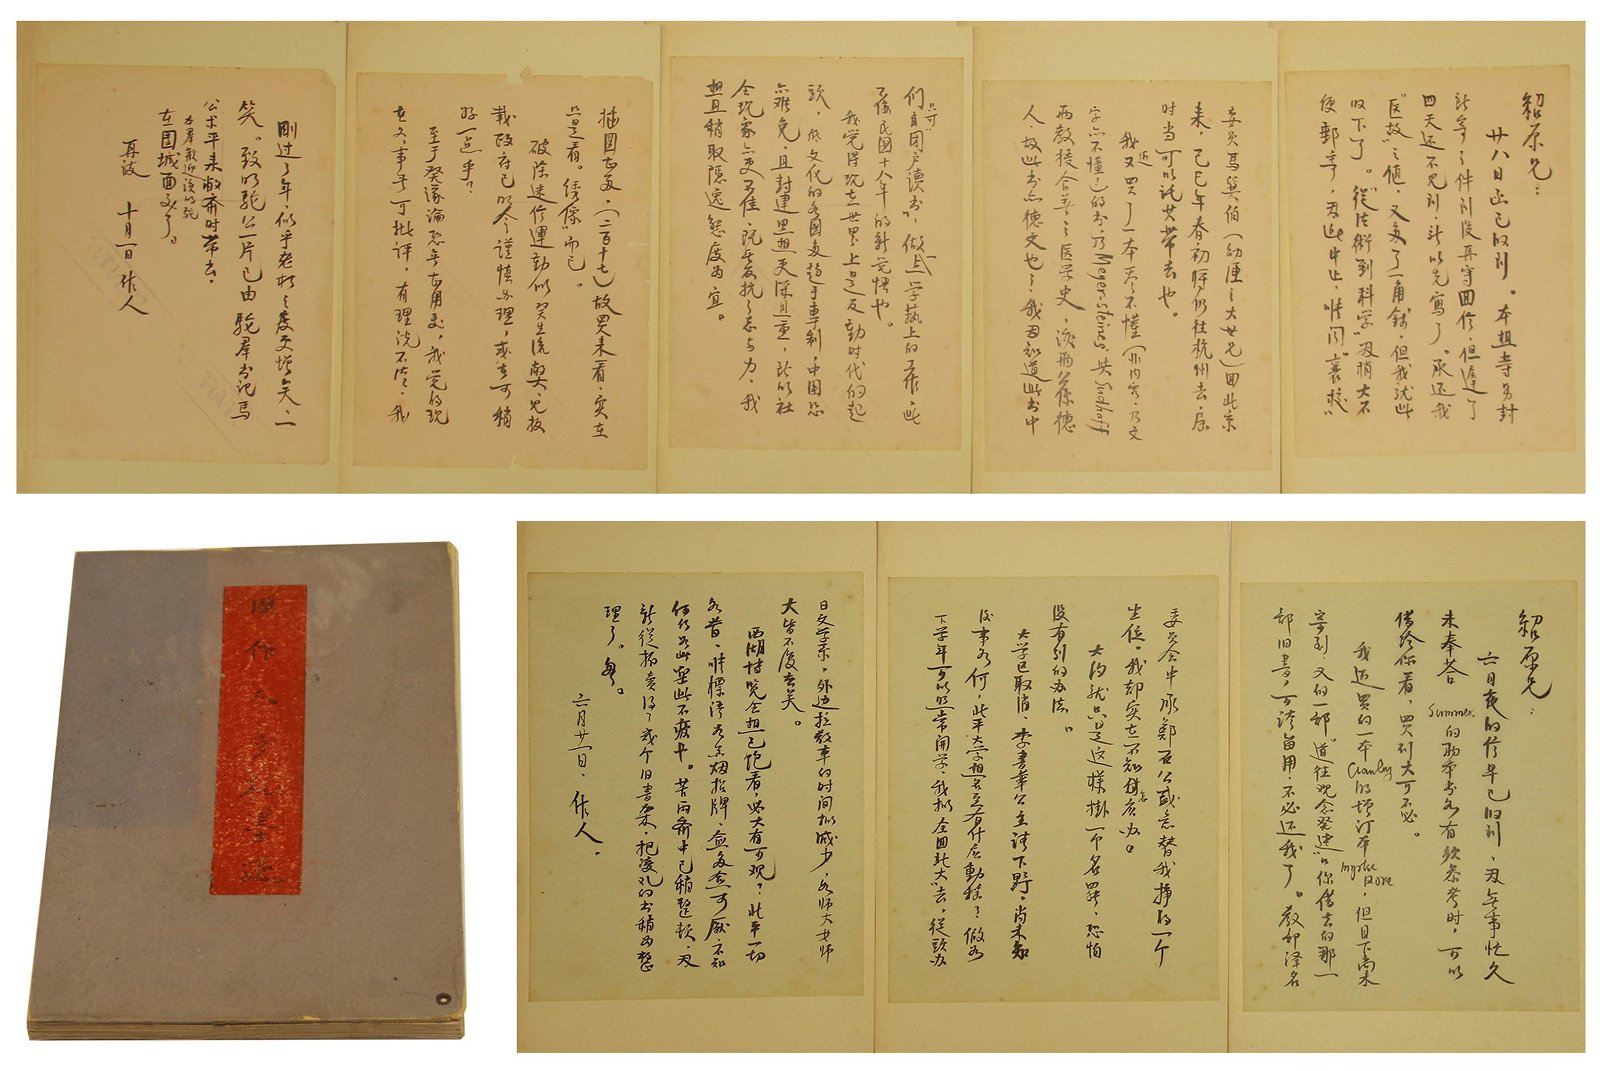 CHINESE PAINTING ALBUM OF HANDWRITTEN LETTERS BY ZHOU